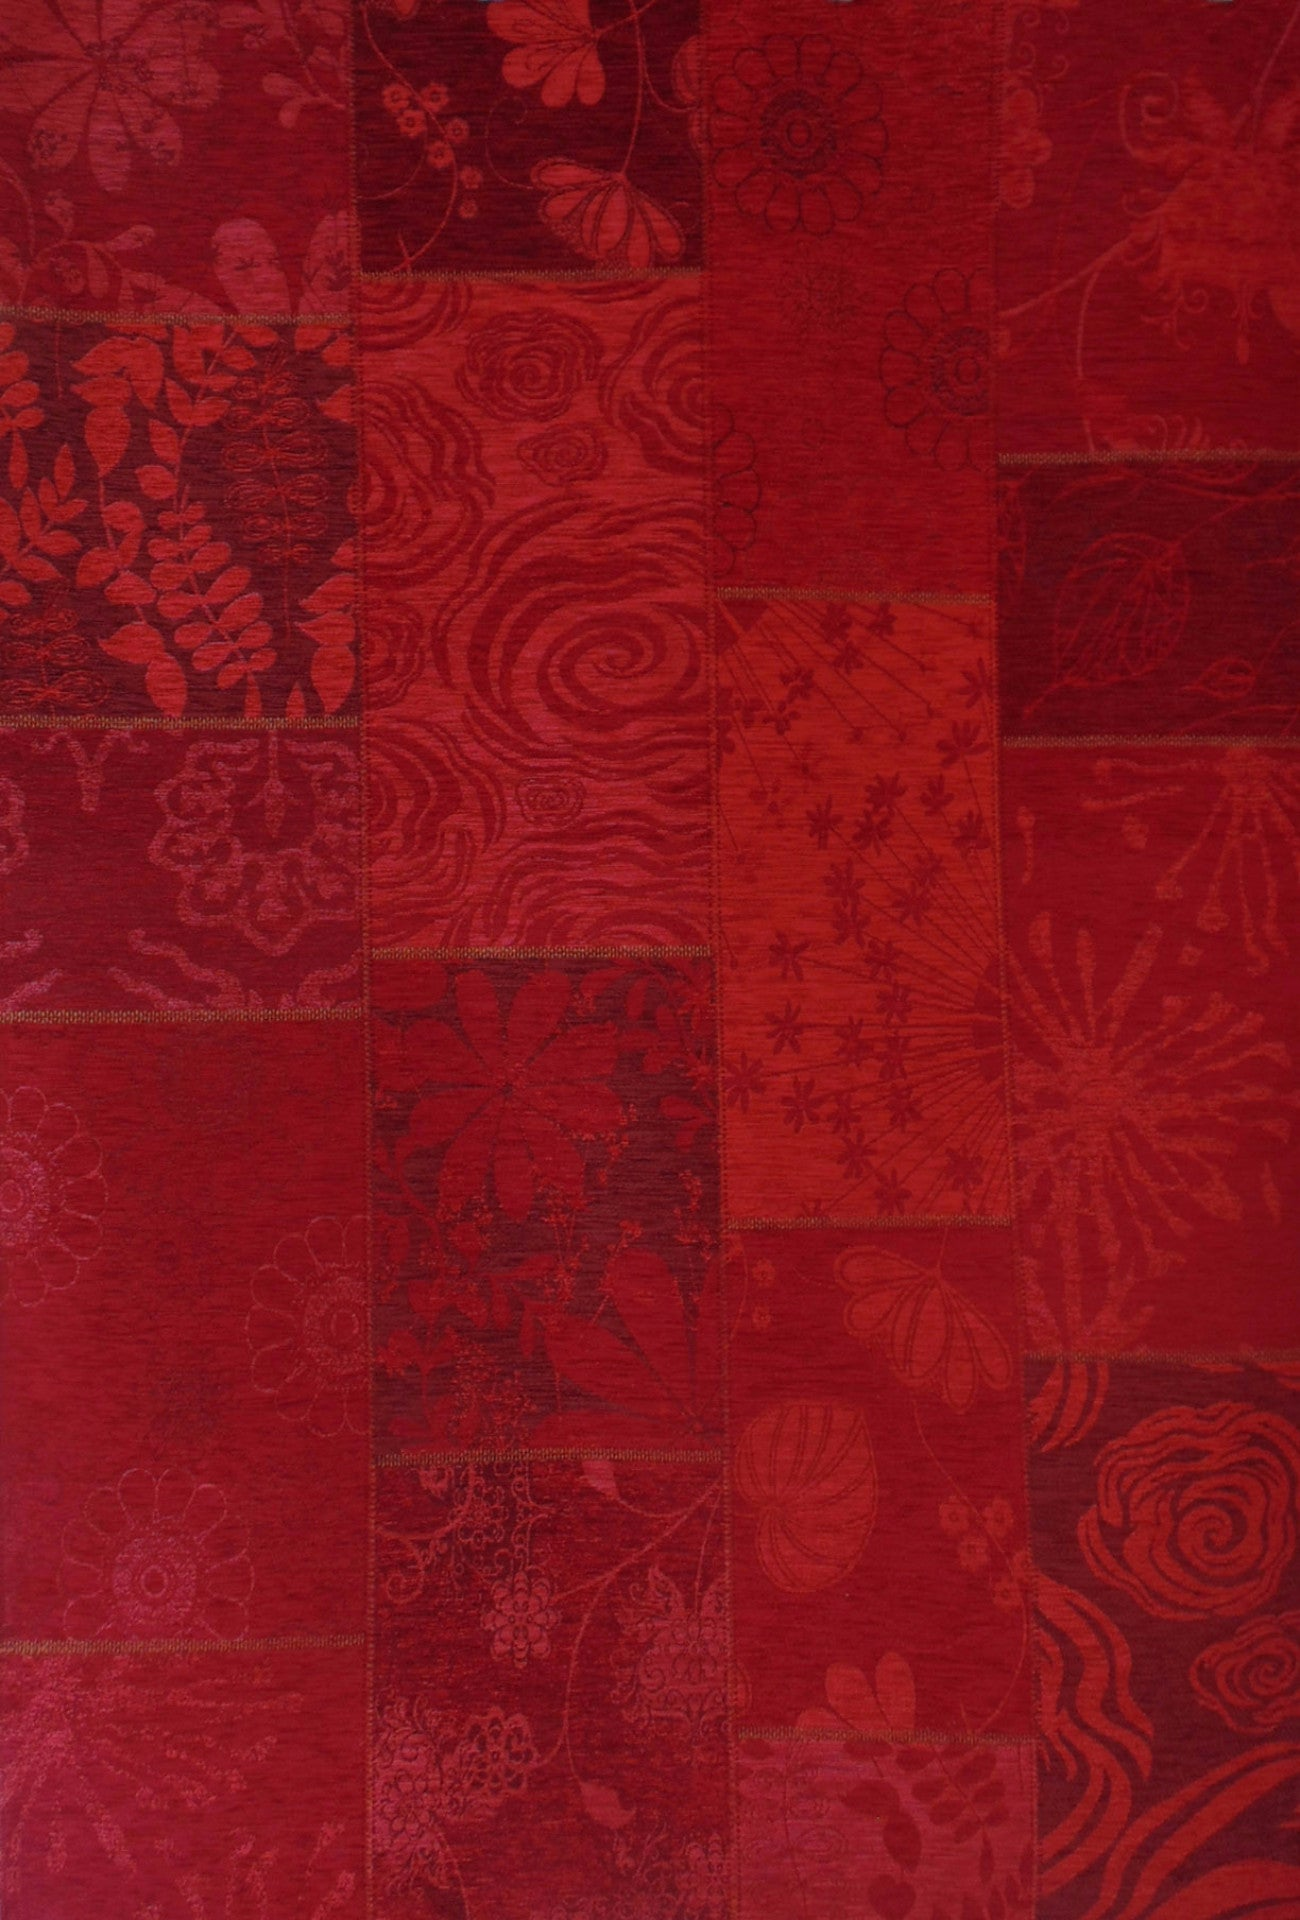 Tapete patchwork vintage sylvia rojo 200x290 cm casamia for Vintage tapete